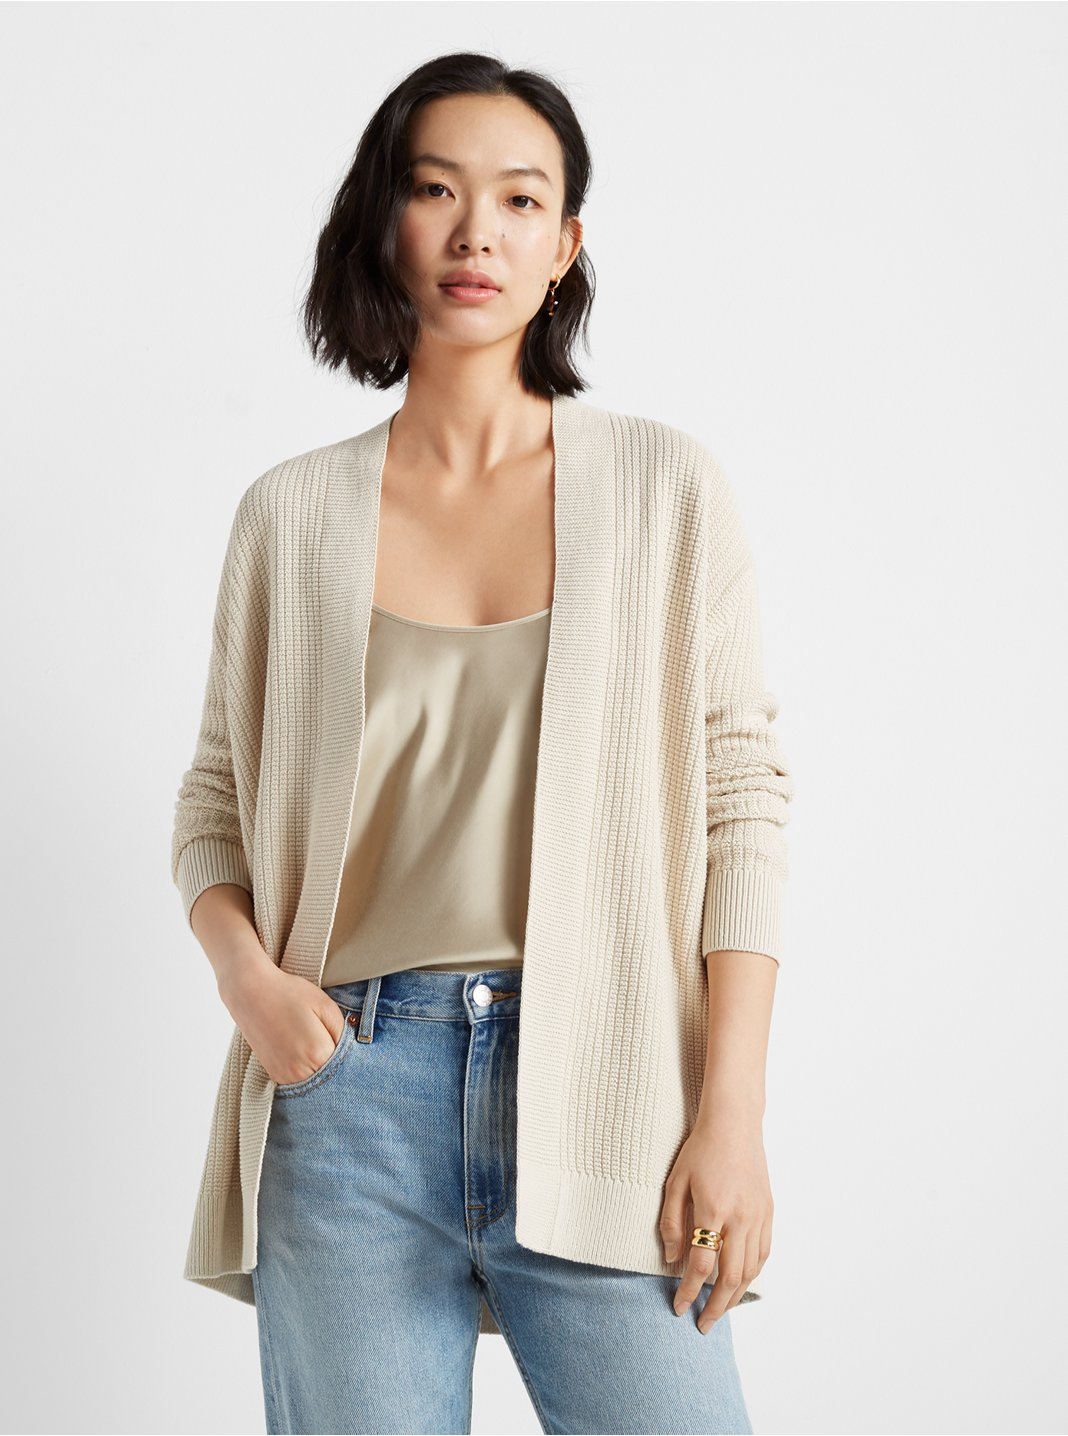 Essential Summer Cardigan